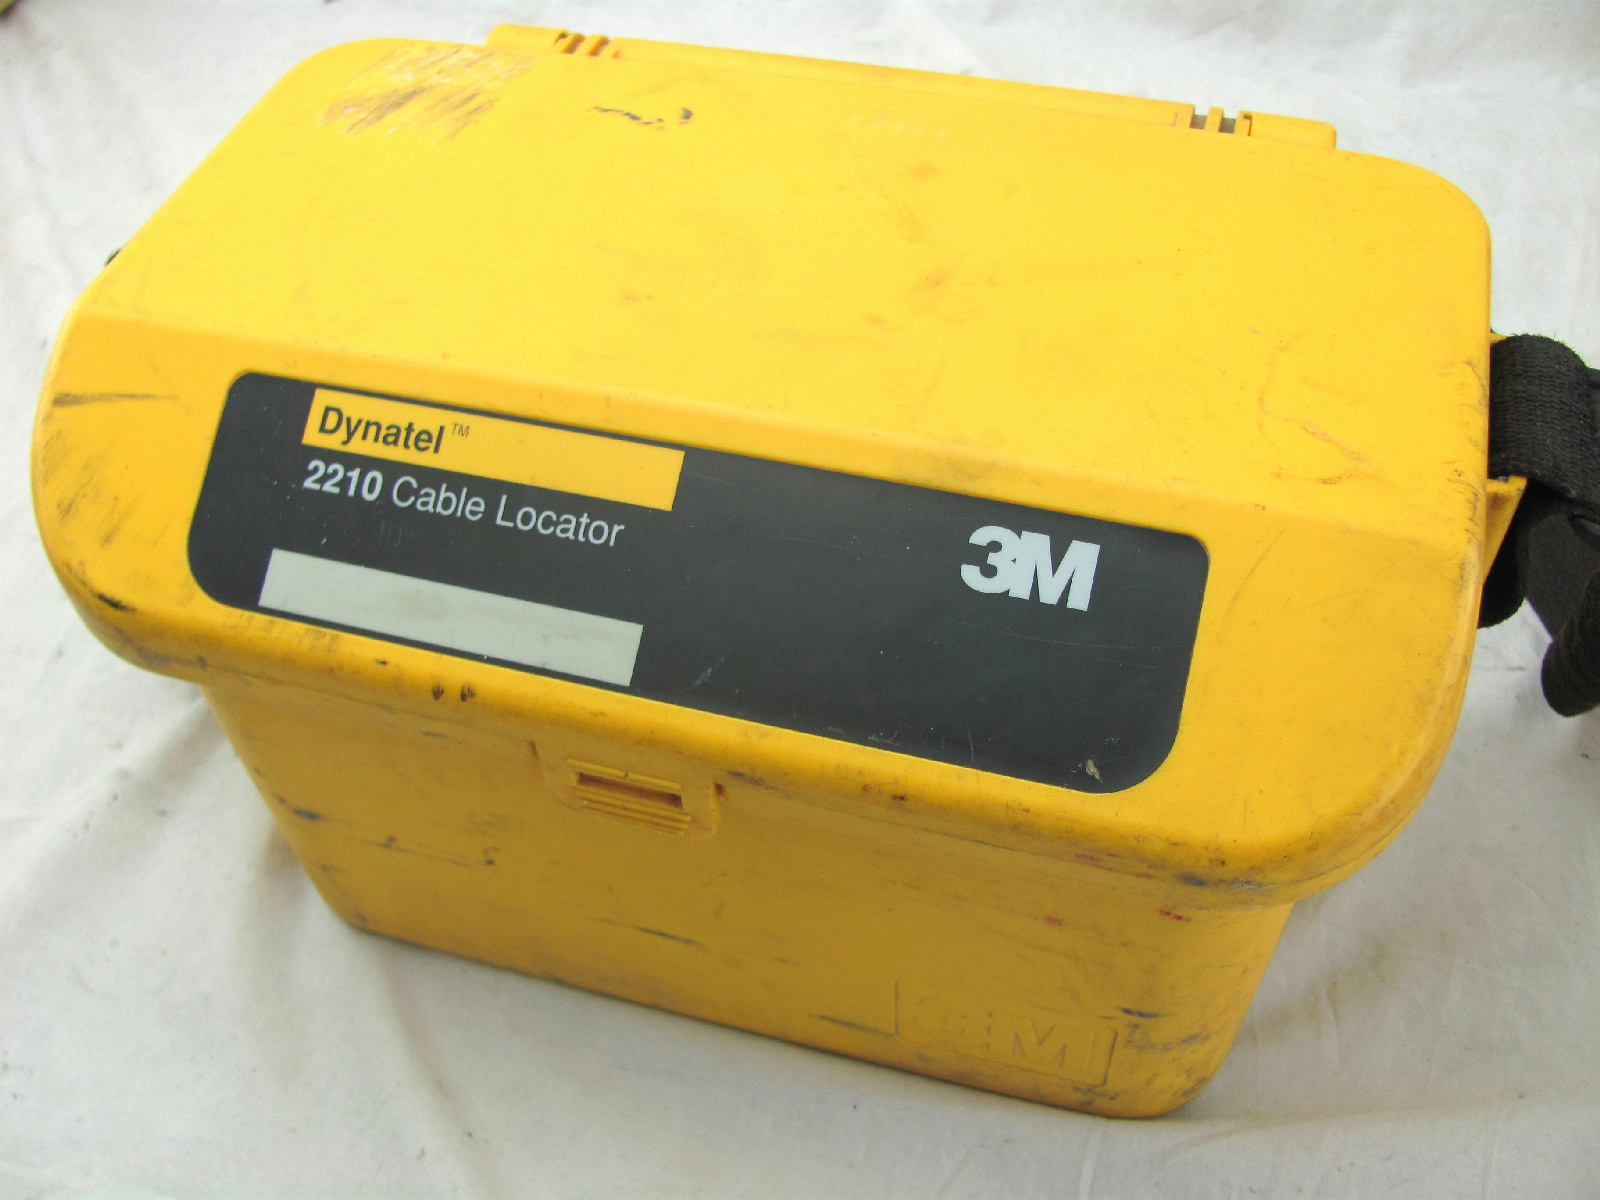 3m Cable Fault Locator : M dynatel cable pipe fault locator transmitter